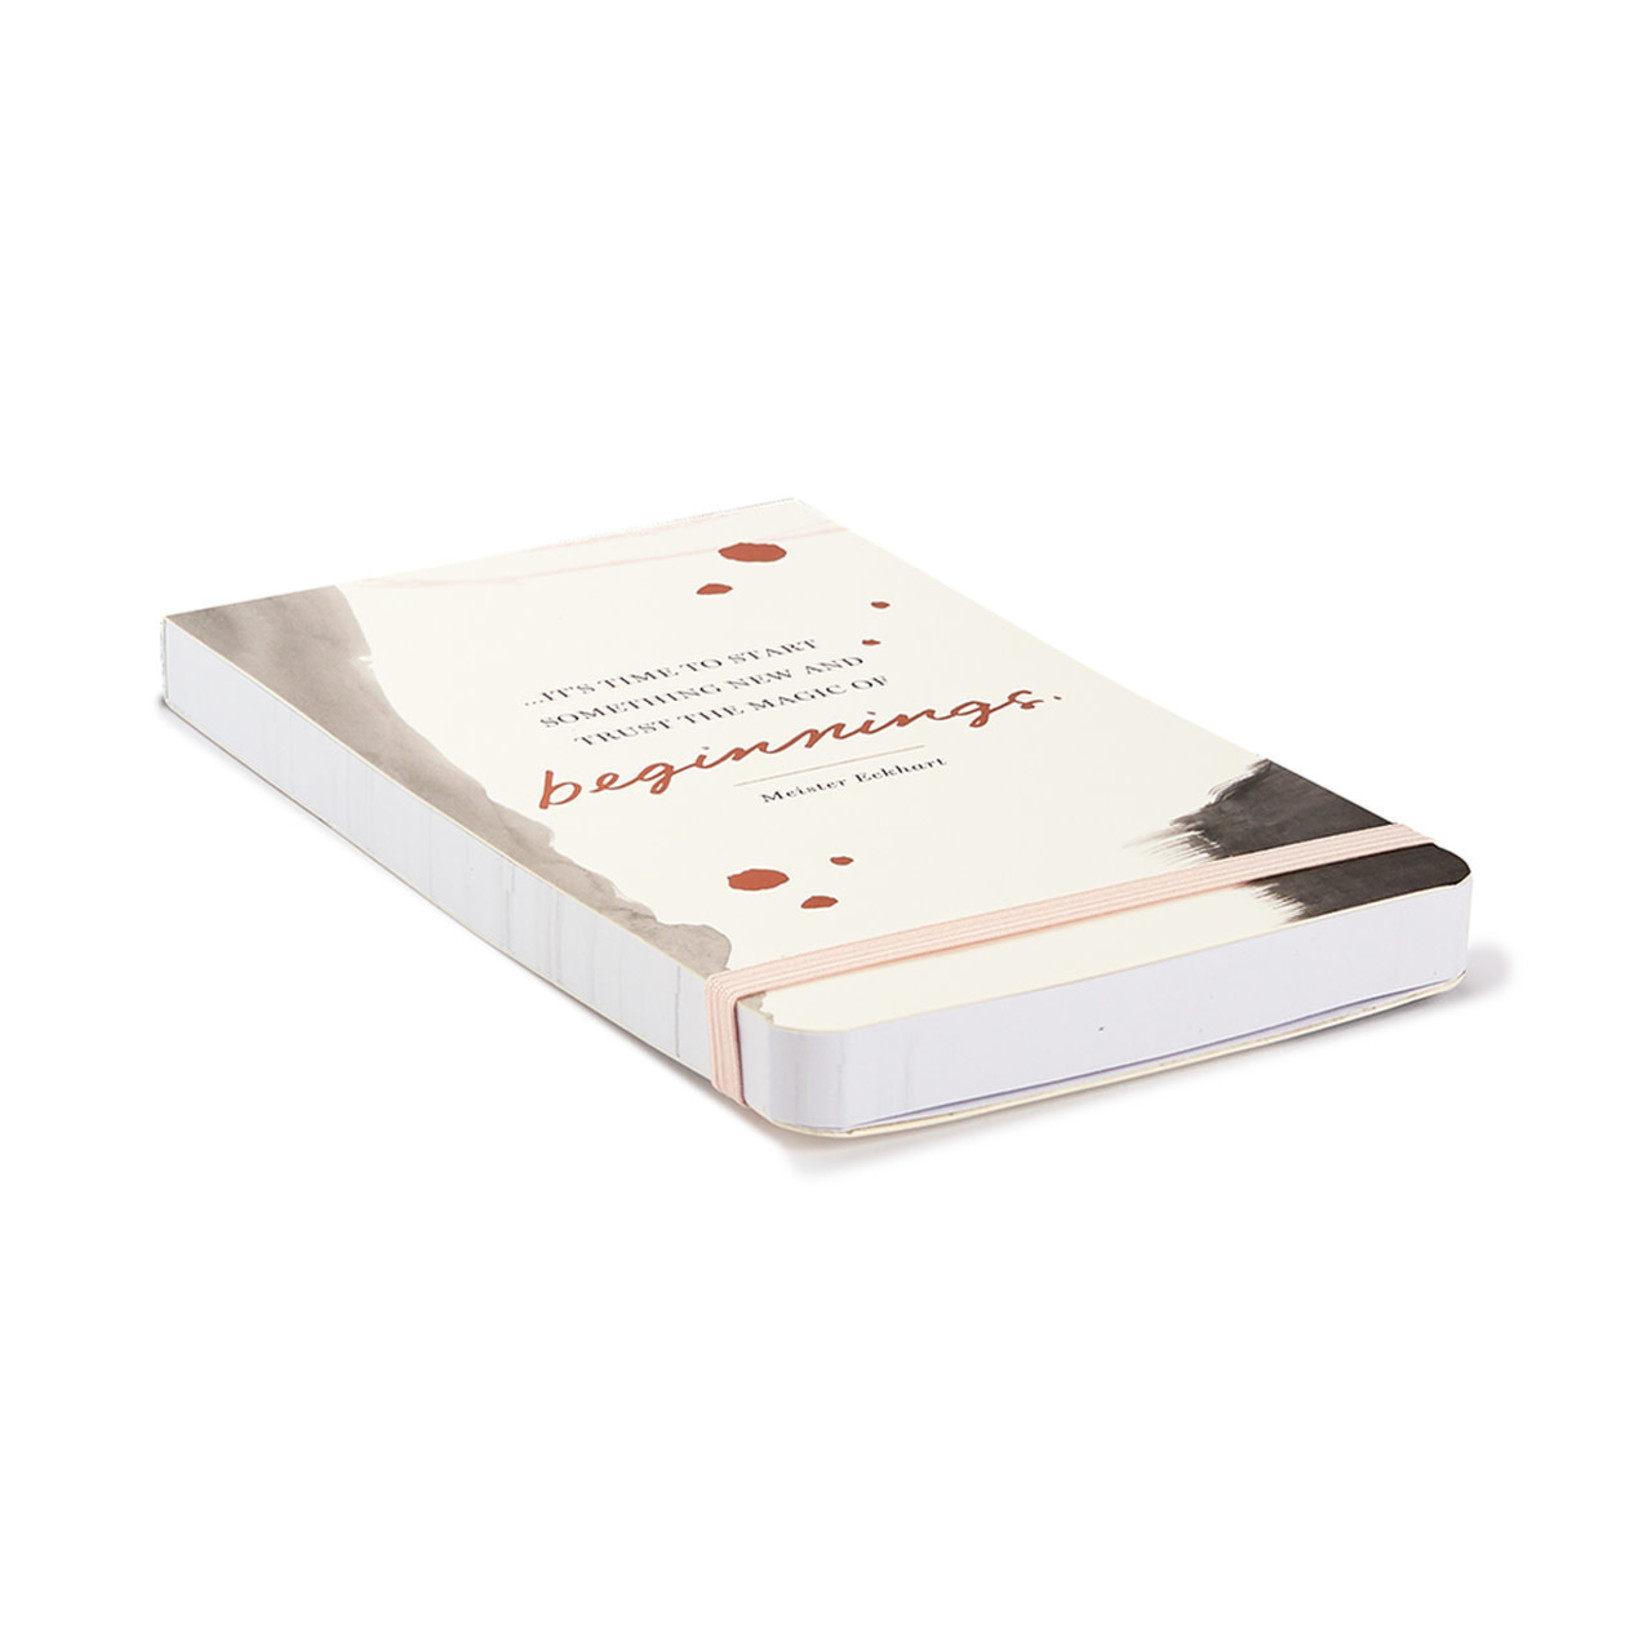 COMPENDIUM It's Time To Start Something New... Pocket List Pad